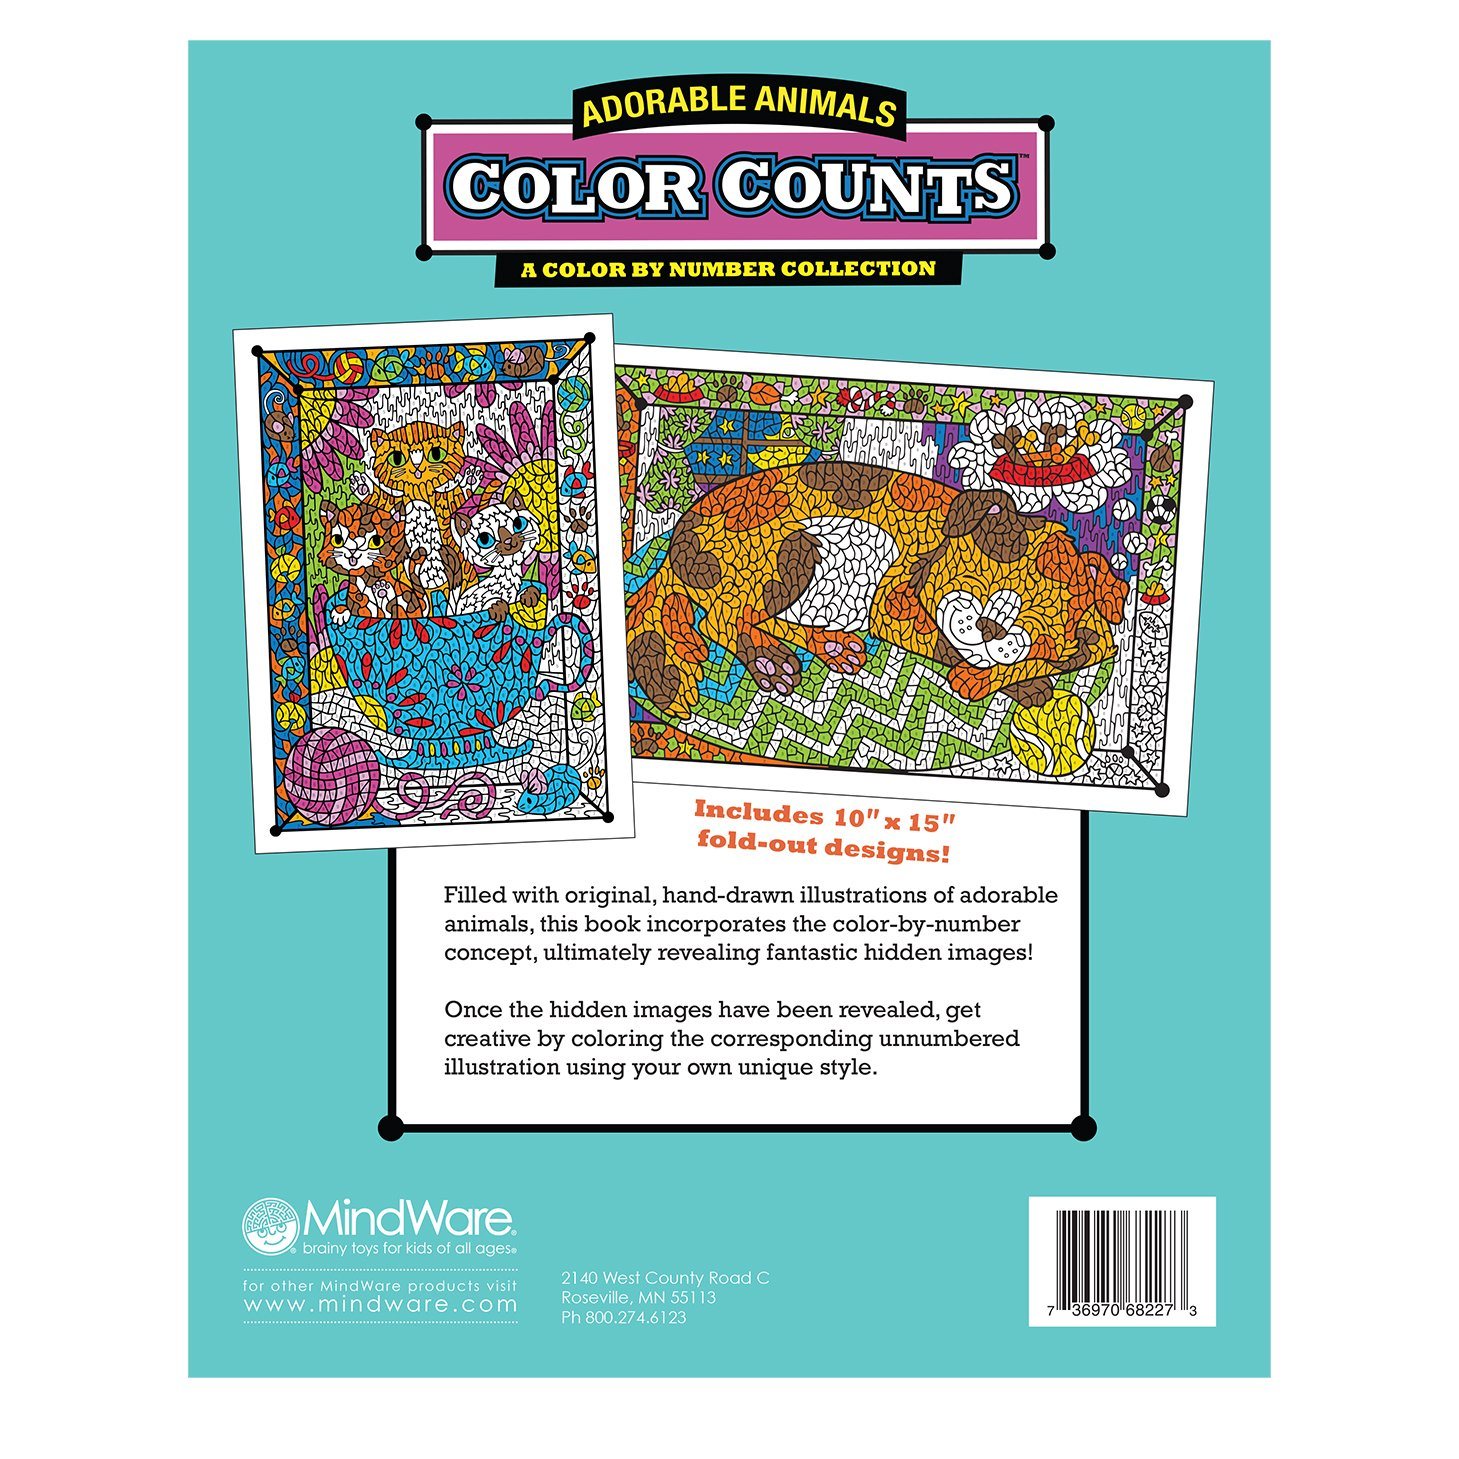 Amazon.com: MindWare Coloring Book Set of 2: Favorite Creatures with ...